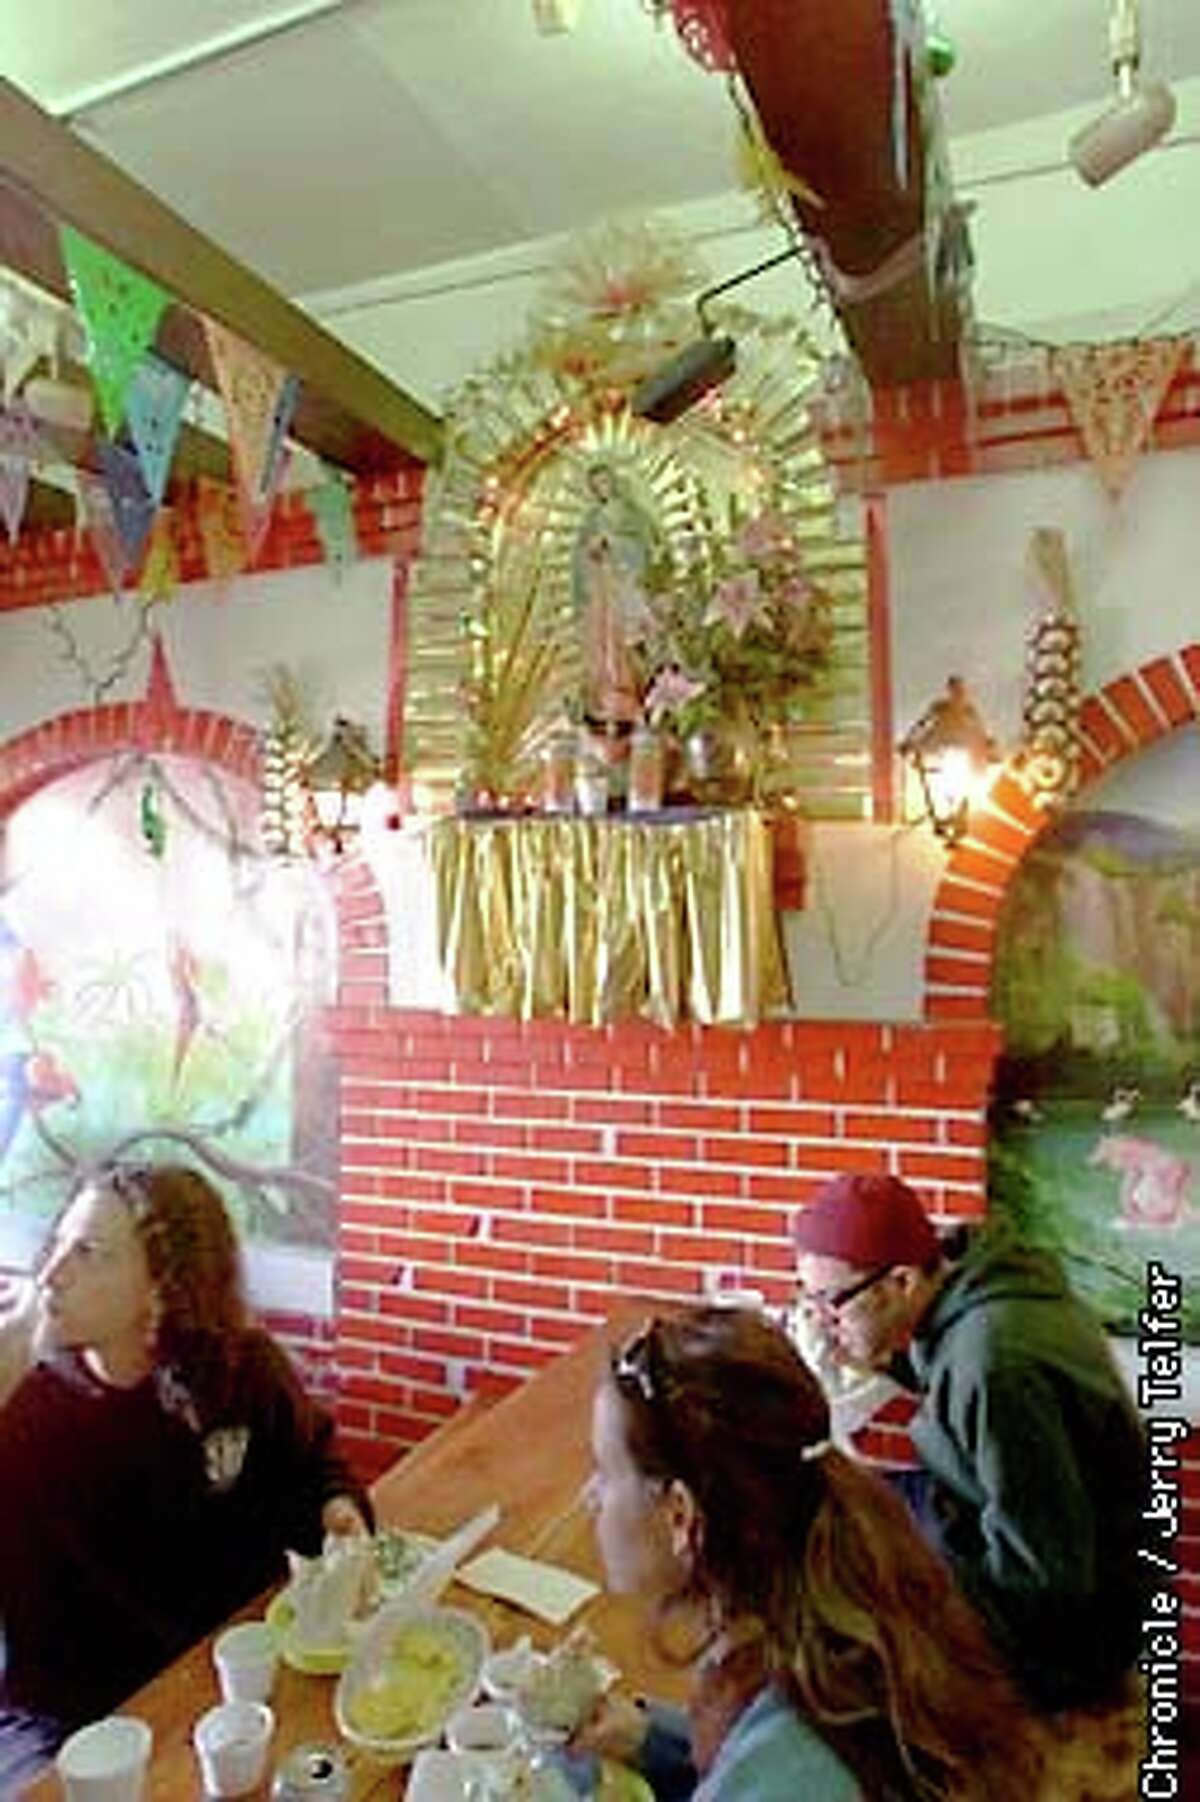 A festive altar, vibrant murals and bright pennants make Taqueria Cancun an attractive place to have a burrito. Chronicle photo by Jerry Telfer